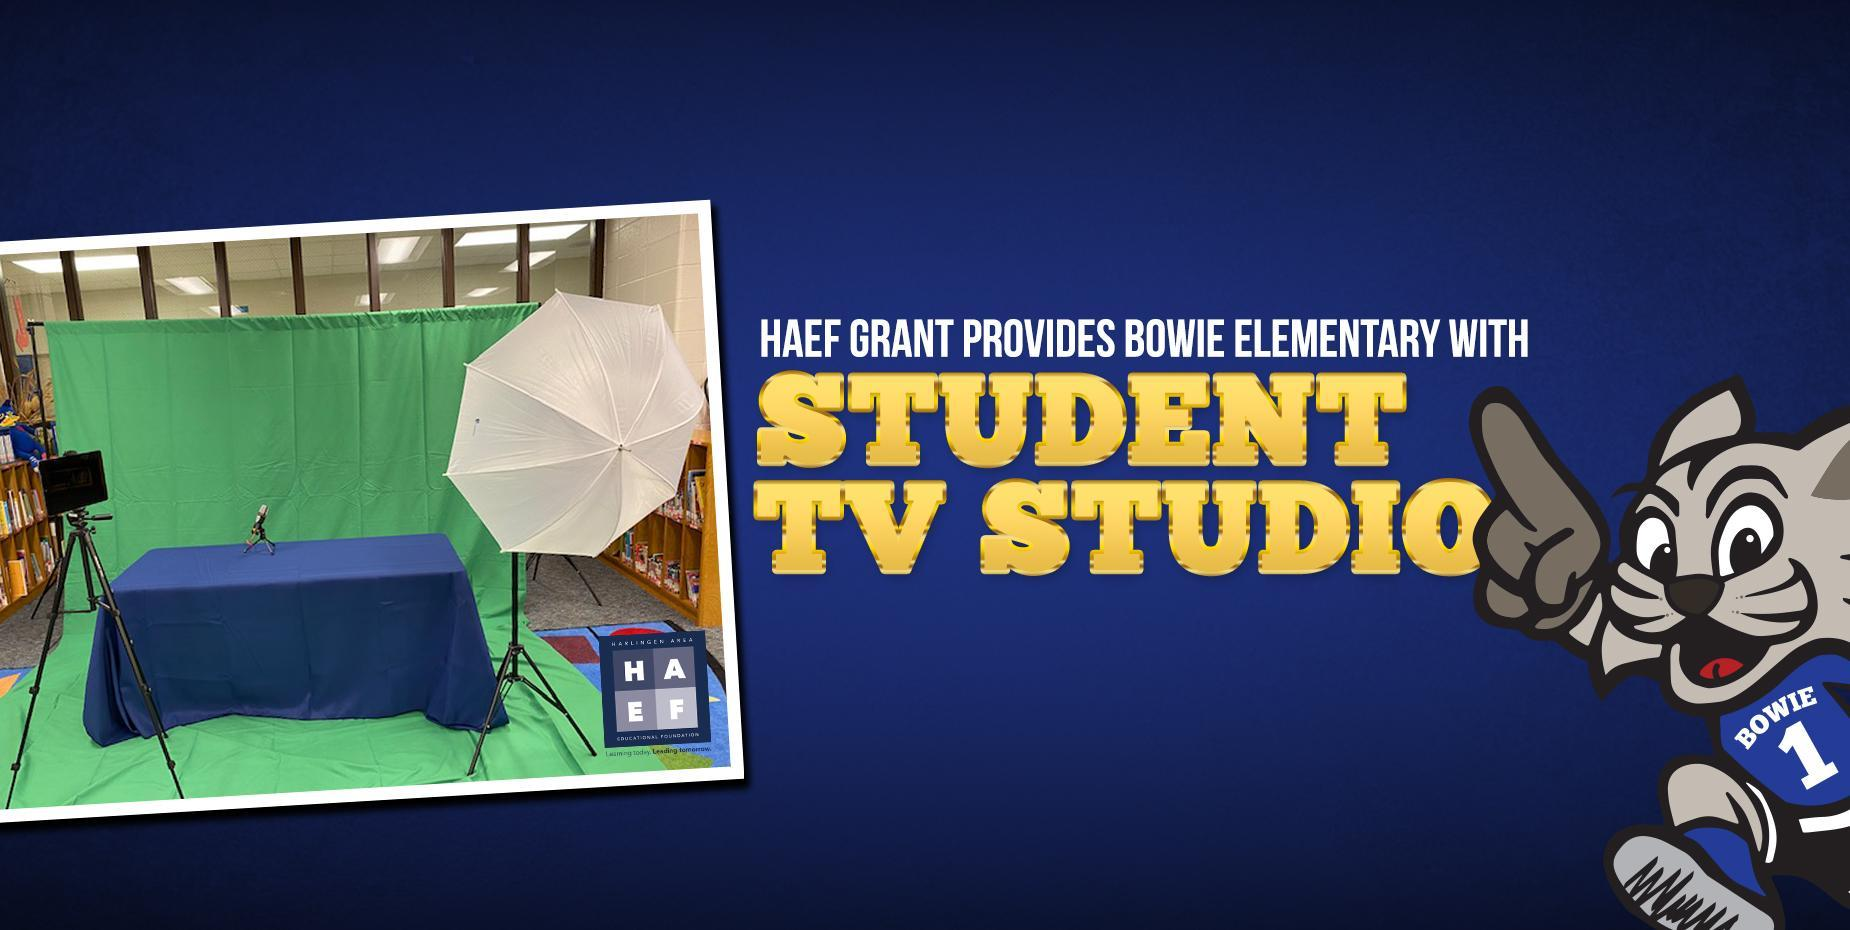 HAEF grant provides Bowie Elementary with student TV studio